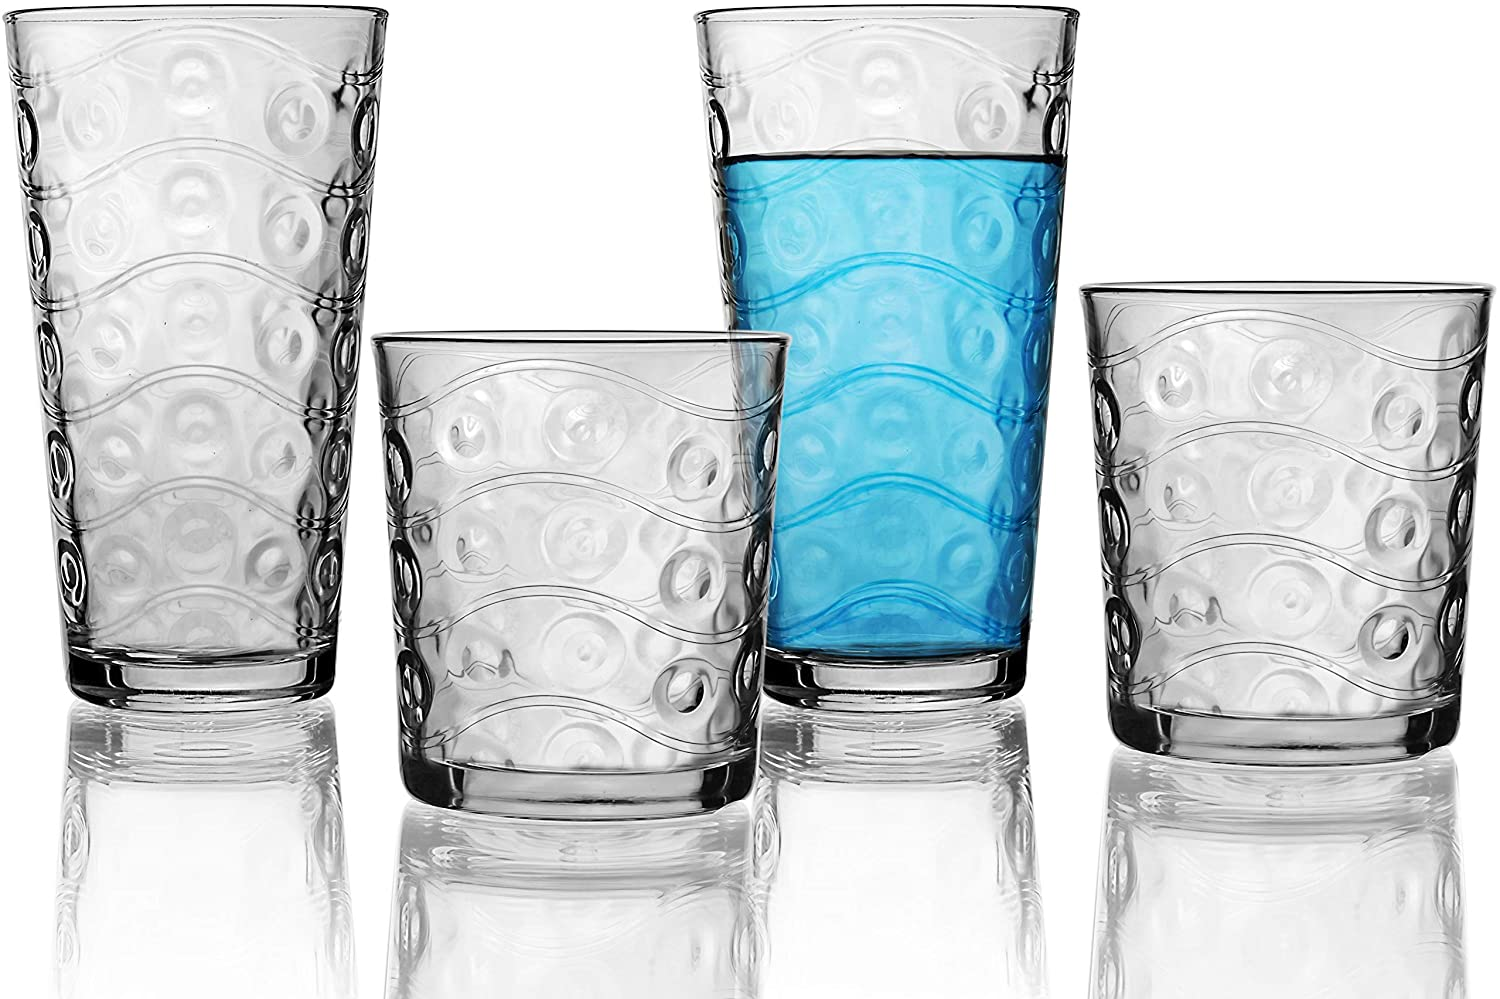 Circleware Parade Huge Set of 16, 8-17oz Drinking Glasses & 8-13oz Double Old Fashioned Whiskey Glass, Kitchen Glassware for Water, Beer, Juice, Ice Tea, Wine and Best Bar Barrel Liquor Beverage Gifts